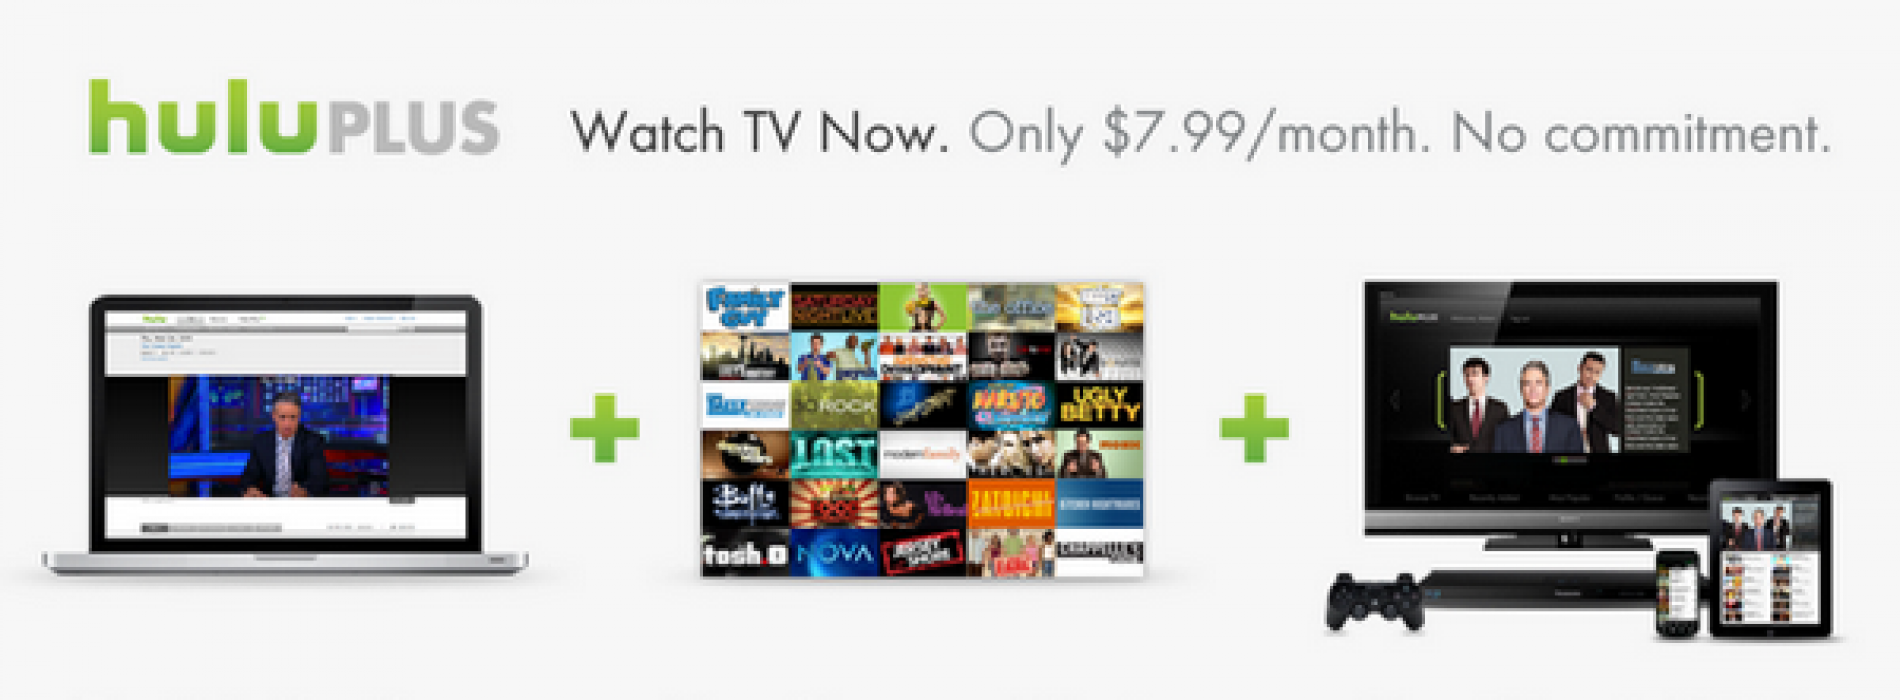 Hulu Plus optimized for smattering of Android tablets